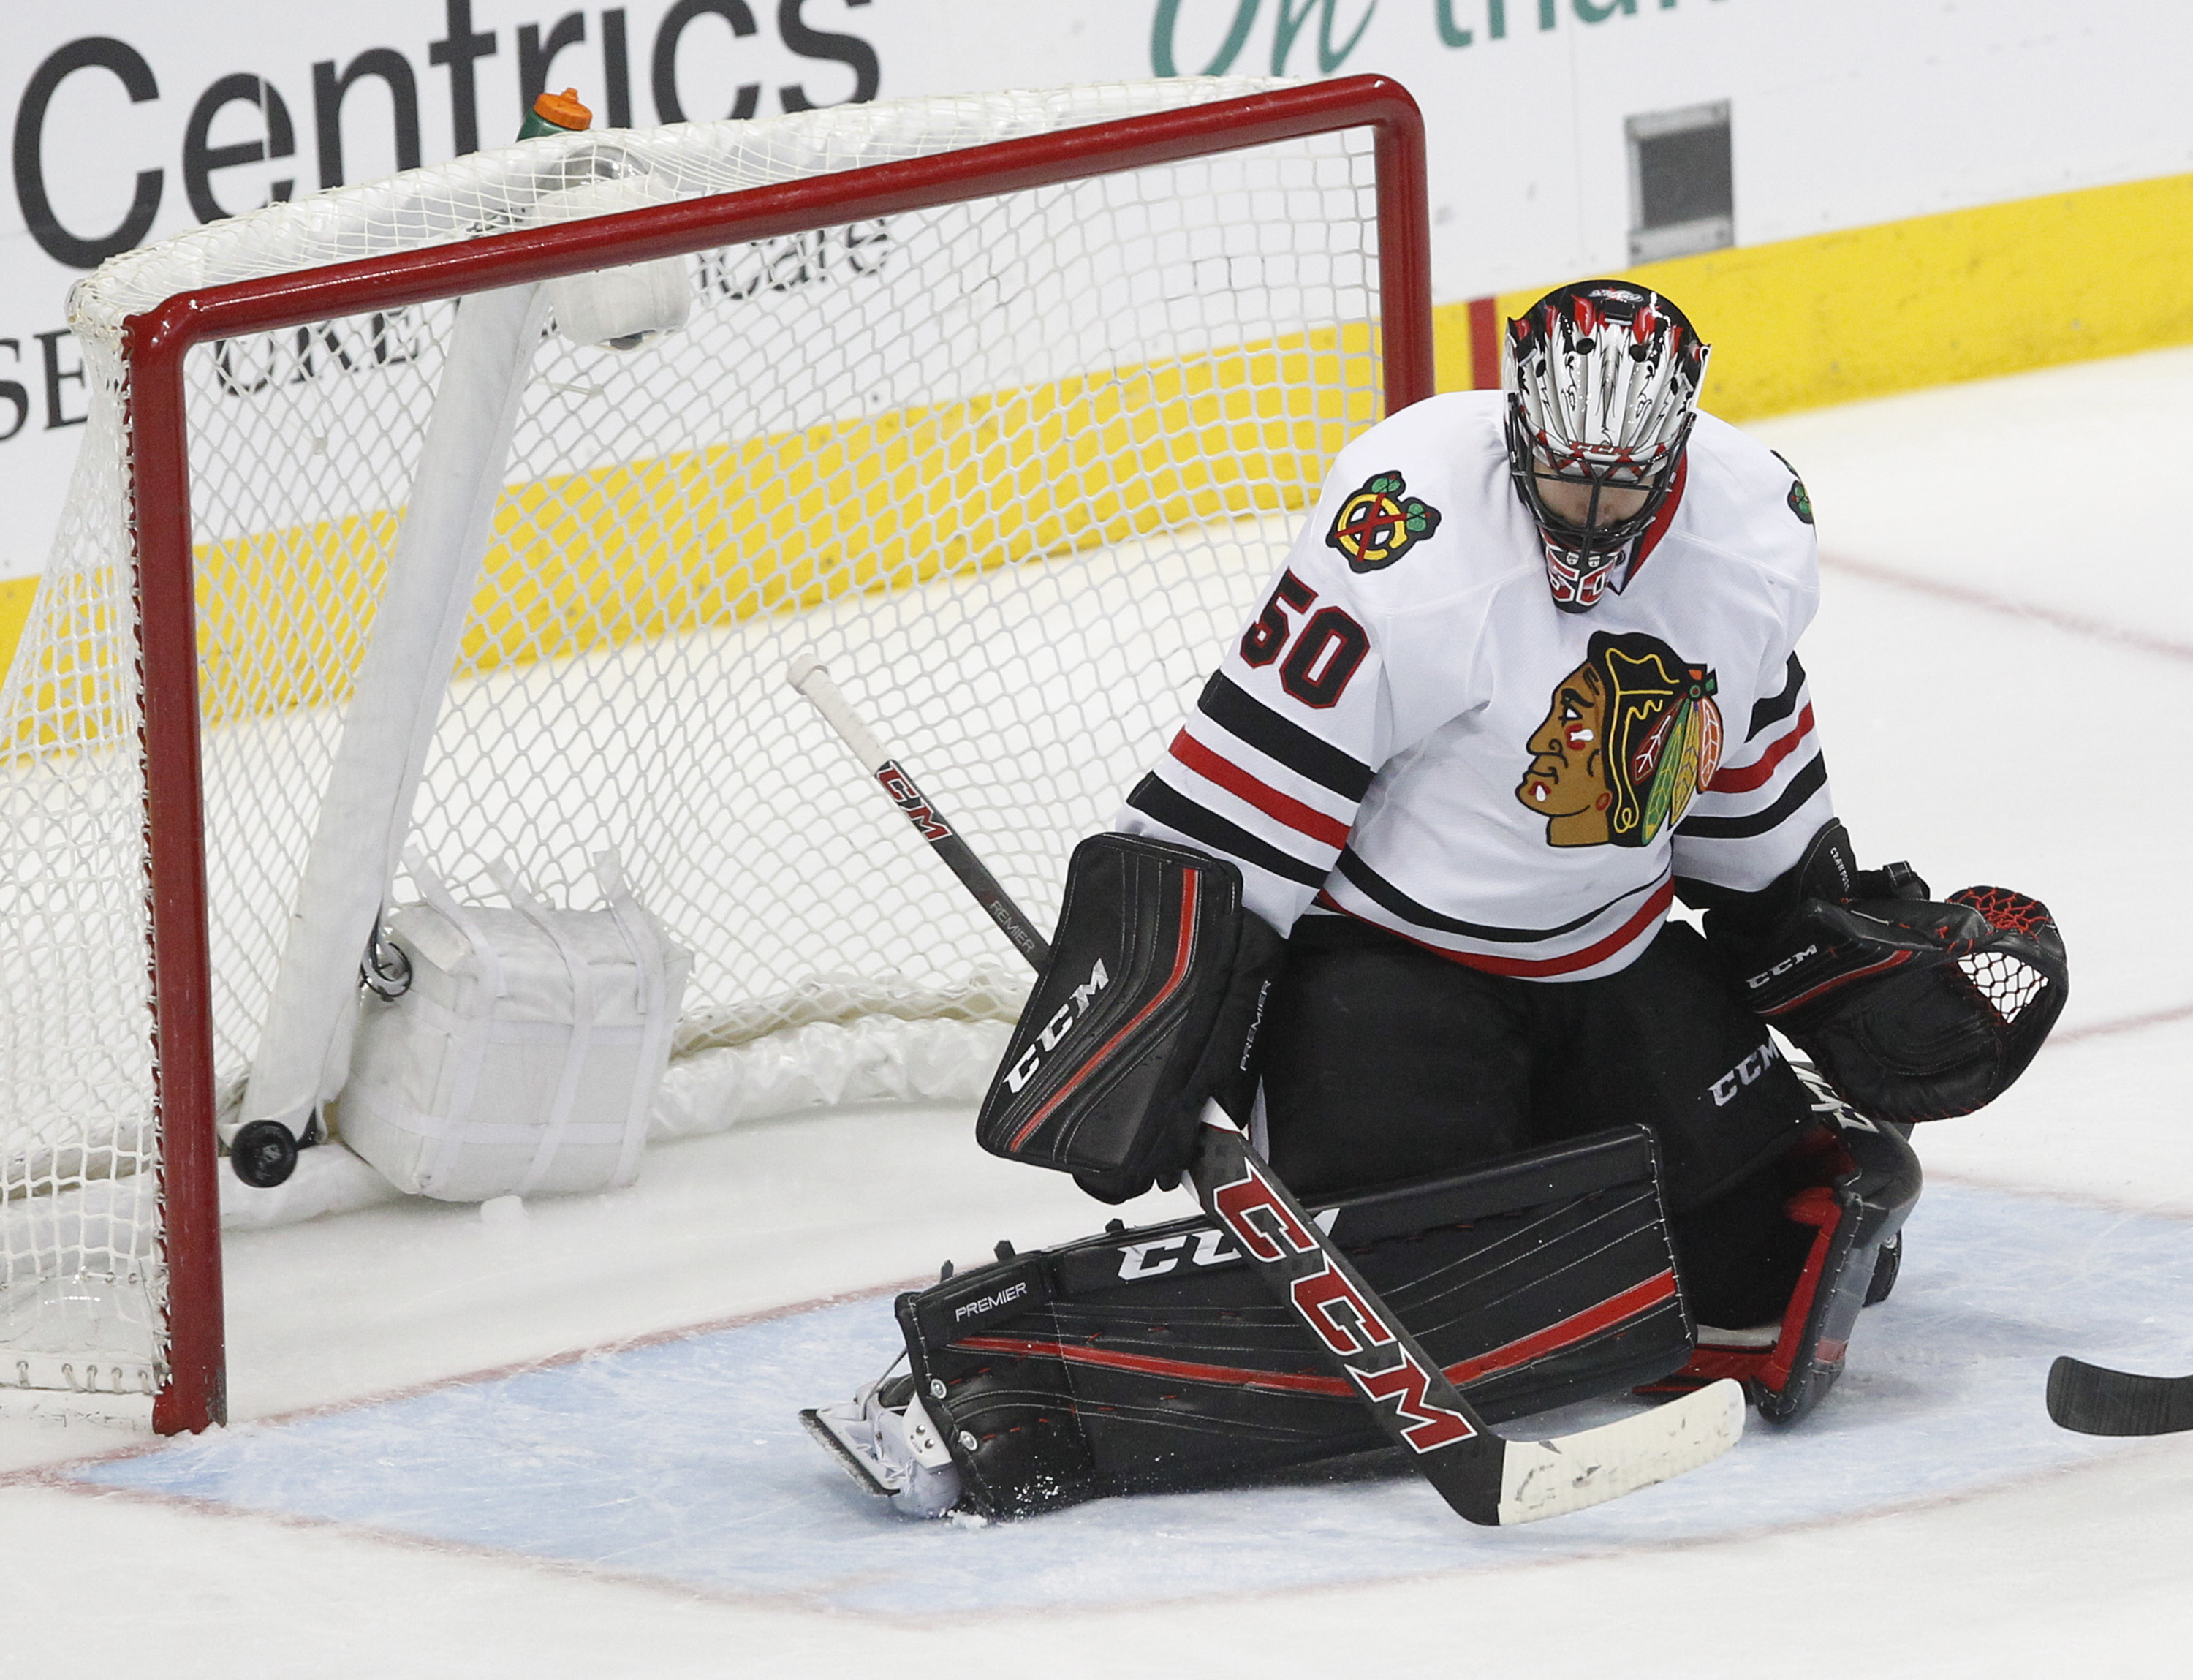 Chicago Blackhawks goalie Corey Crawford looks for the puck as it hits the back of the goal on a shot from Dallas Stars center Jason Spezza during the first period of an NHL hockey game Friday, March 11, 2016, in Dallas. (AP Photo/Tim Sharp)